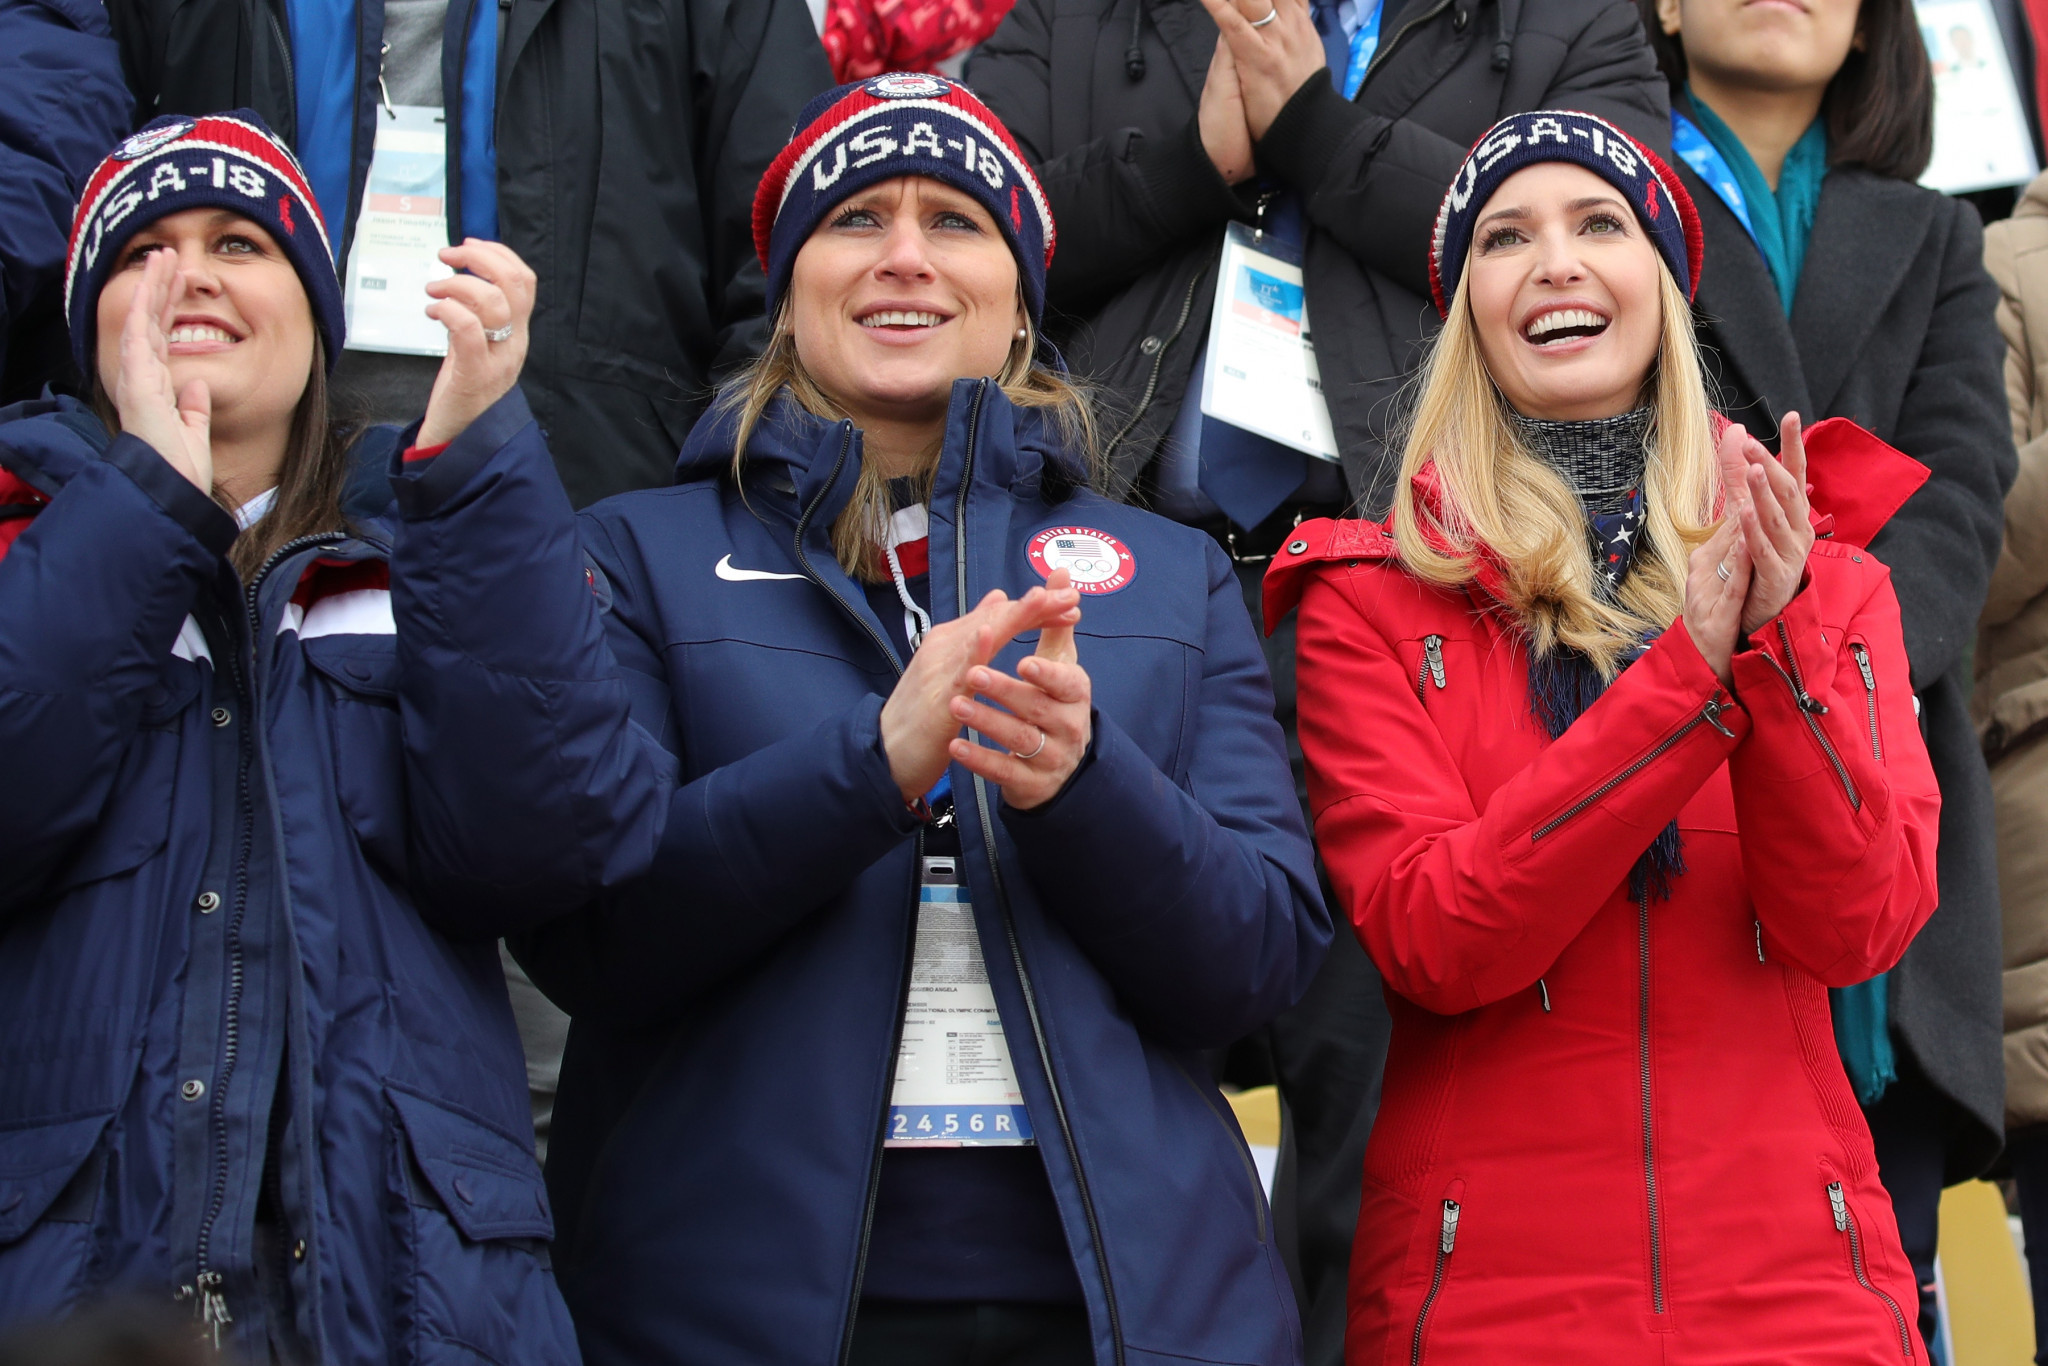 Angela Ruggiero, pictured centre with United States President Donald Trump's daughter Ivanka, right, during the Pyeongchang 2018 Winter Olympic Games, is considered a leading figure in the sports world ©Getty Images